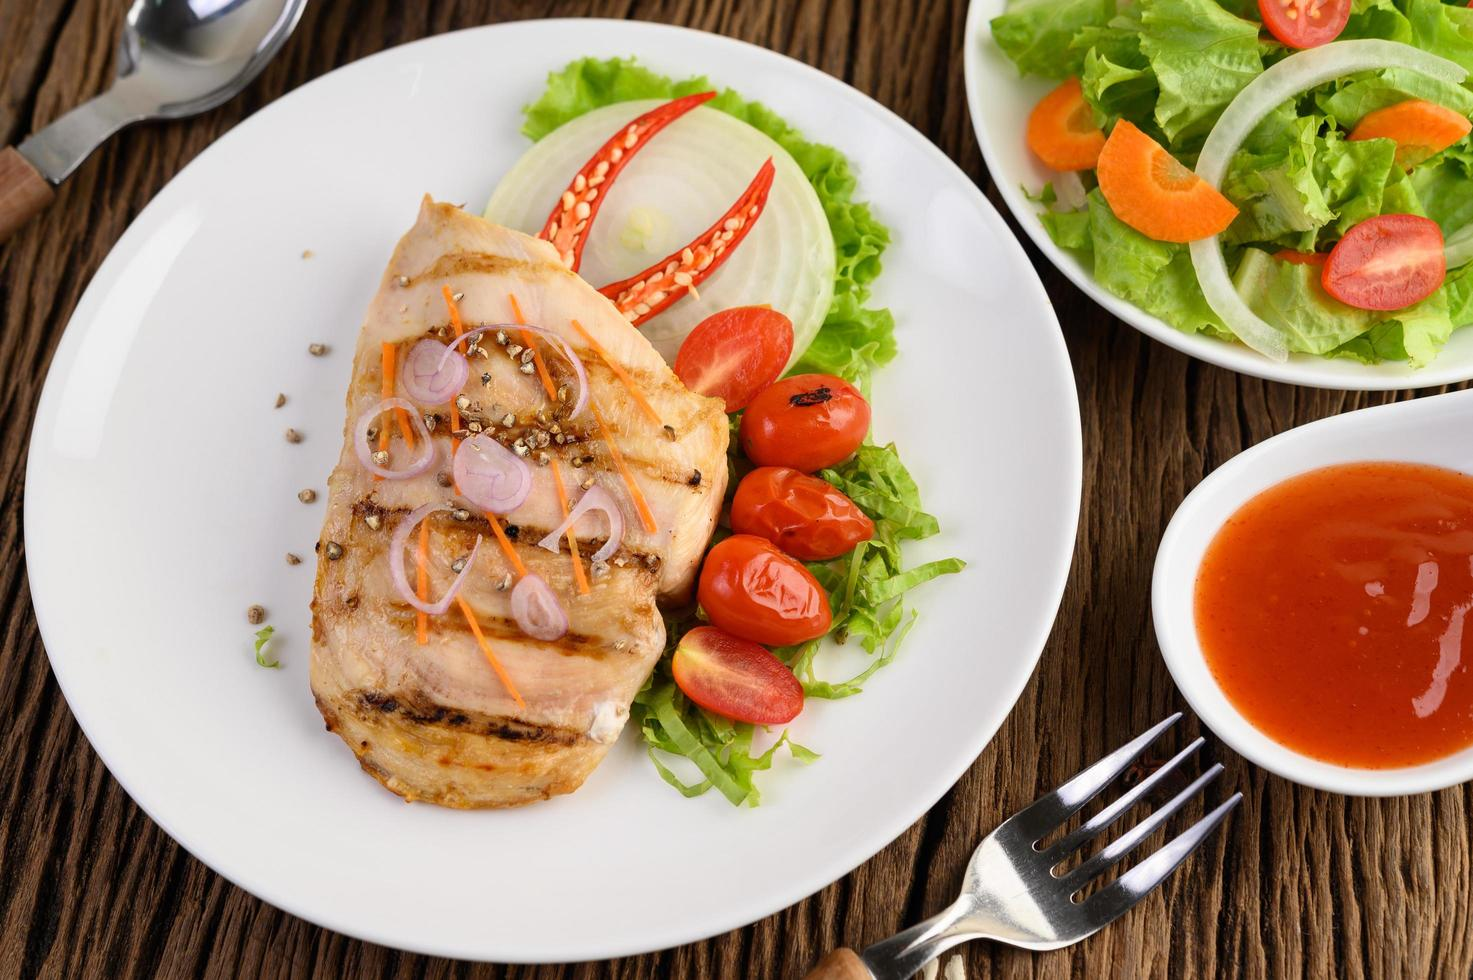 Grilled chicken with grilled vegetables and salad photo